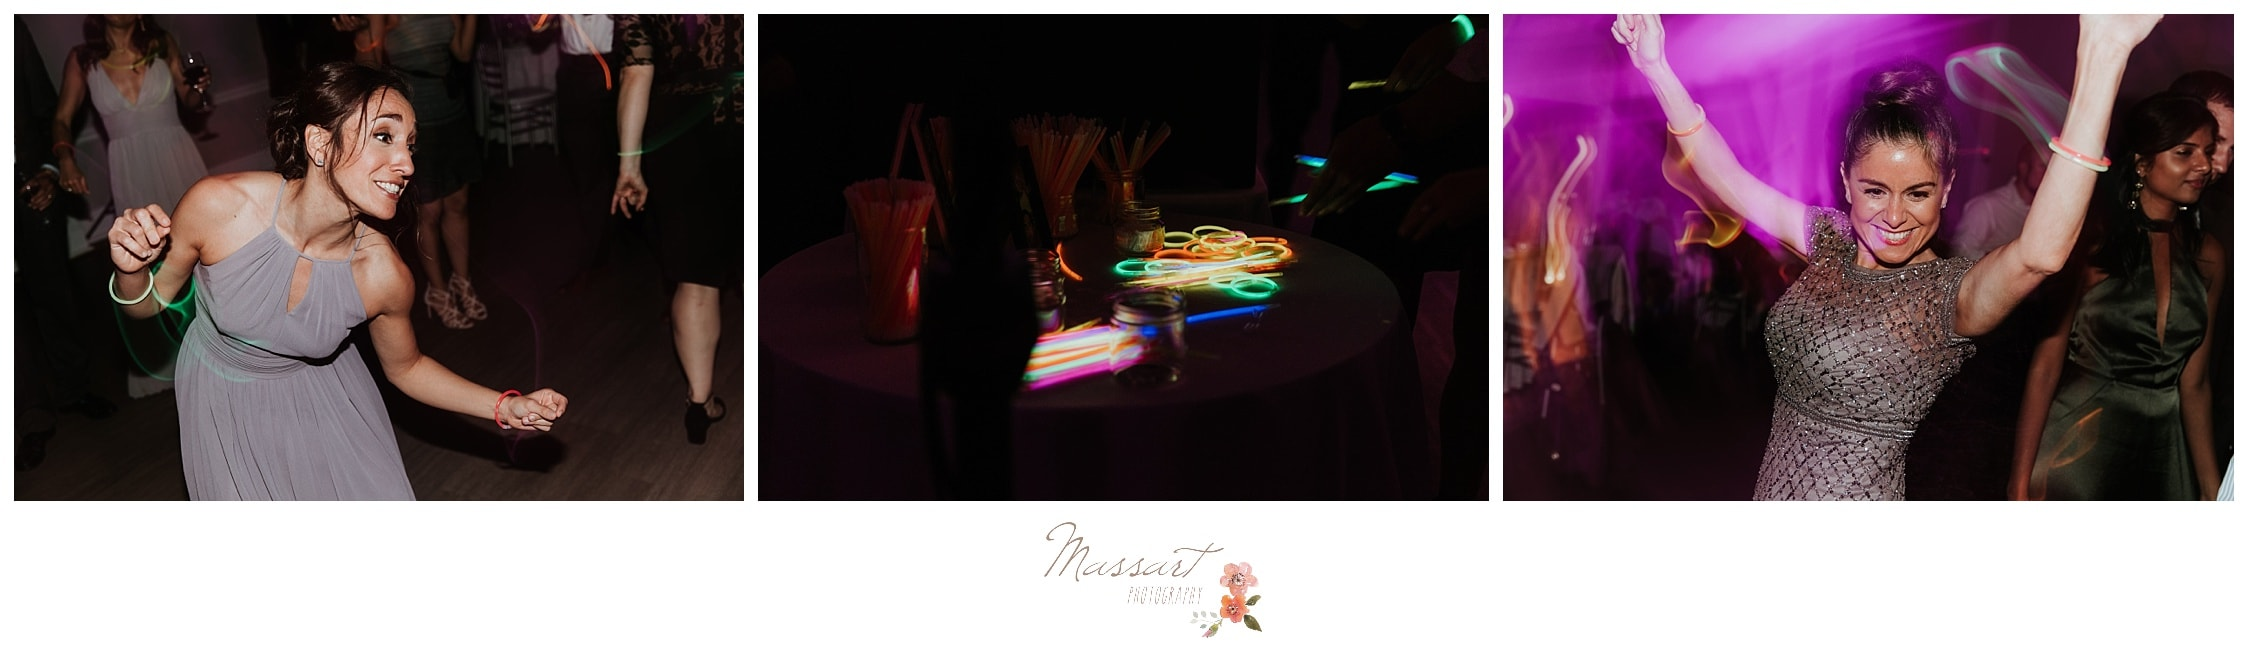 Portraits of glow sticks being used around the wedding reception photographed by Massart Photography Rhode Island